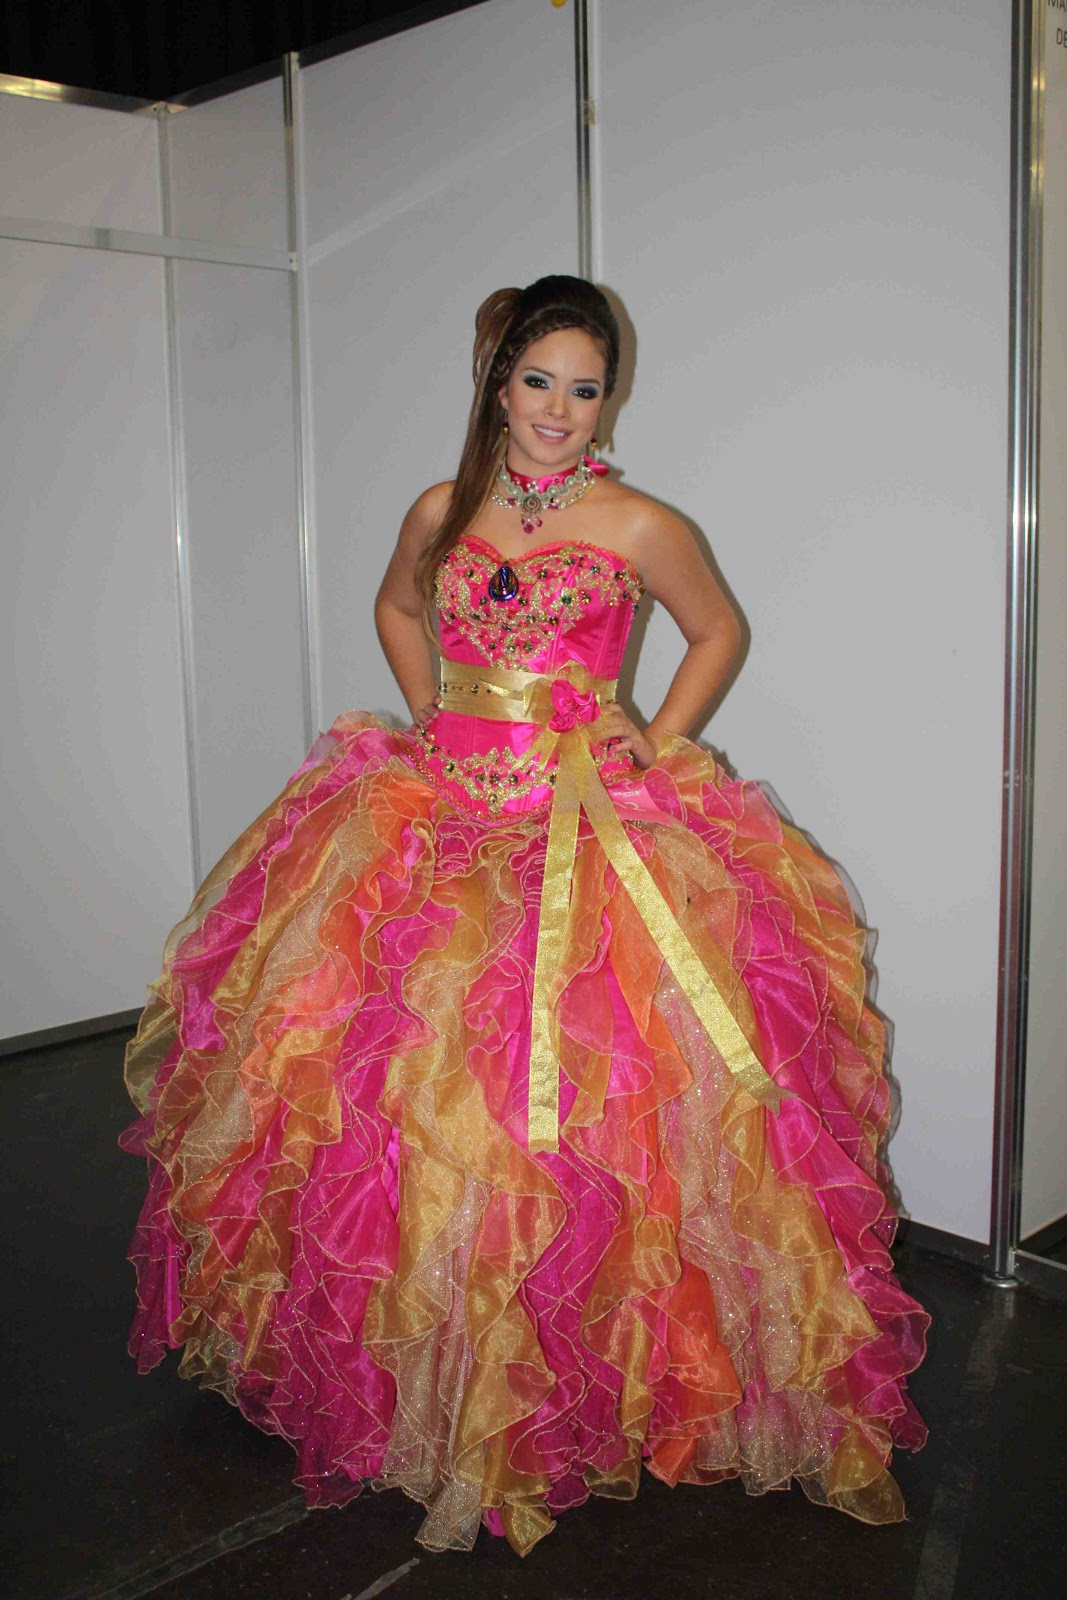 15 Anera Dresses http://www.quinceaneradressesindallas.com/2012/05/15-dresses-in-dallas-tx-which-one-of.html